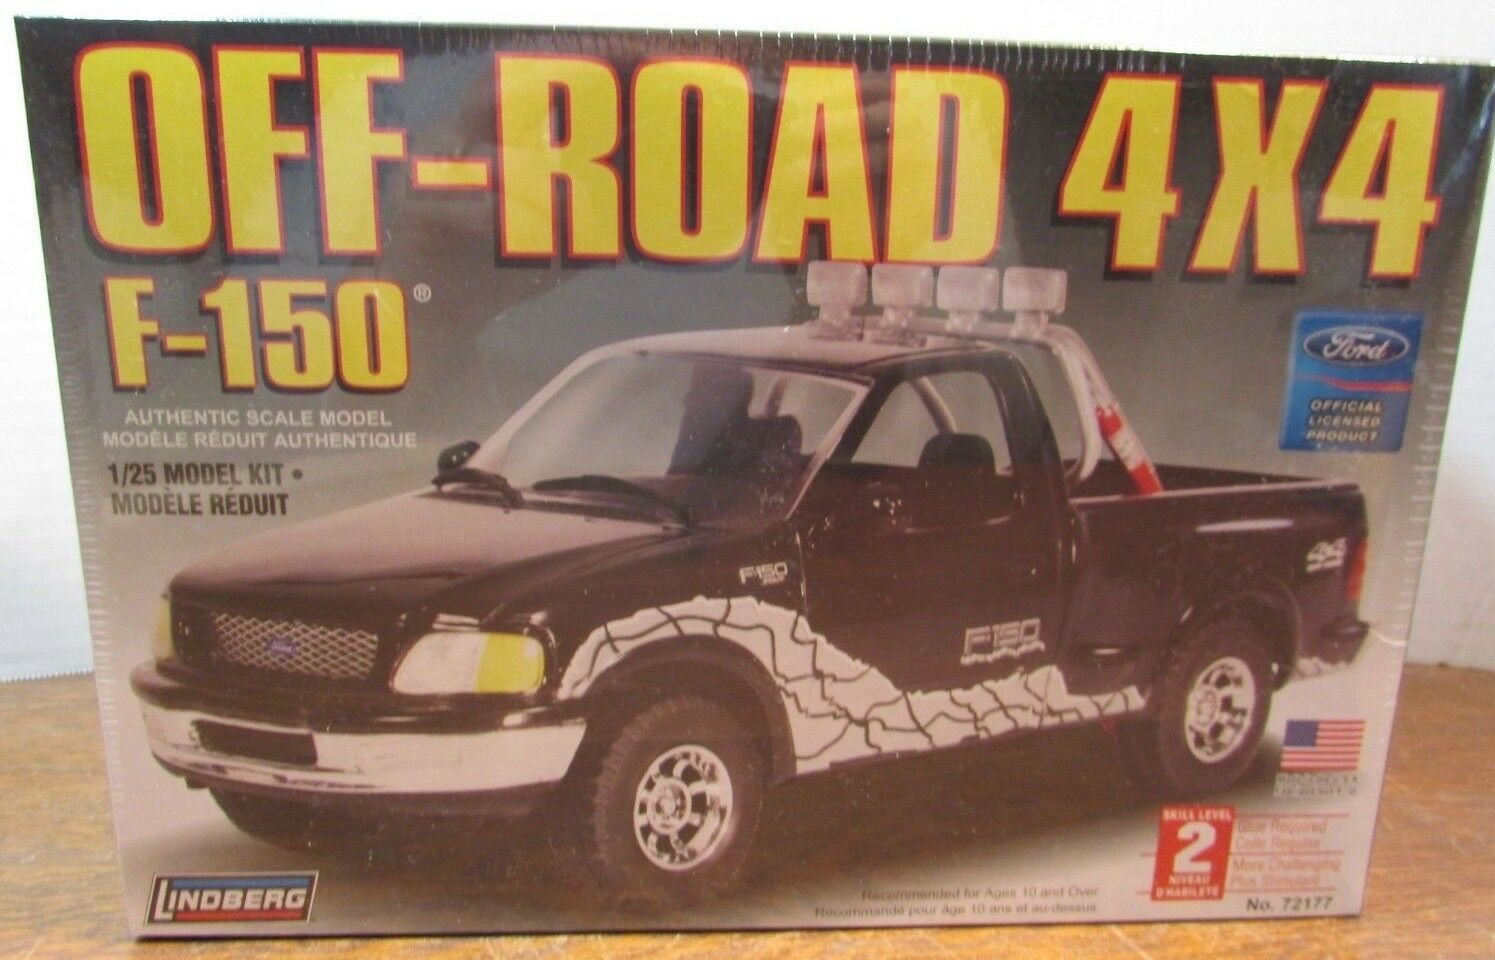 Lindberg 1:25 Scale Ford Off Road 4 X4 F-150 and 50 similar